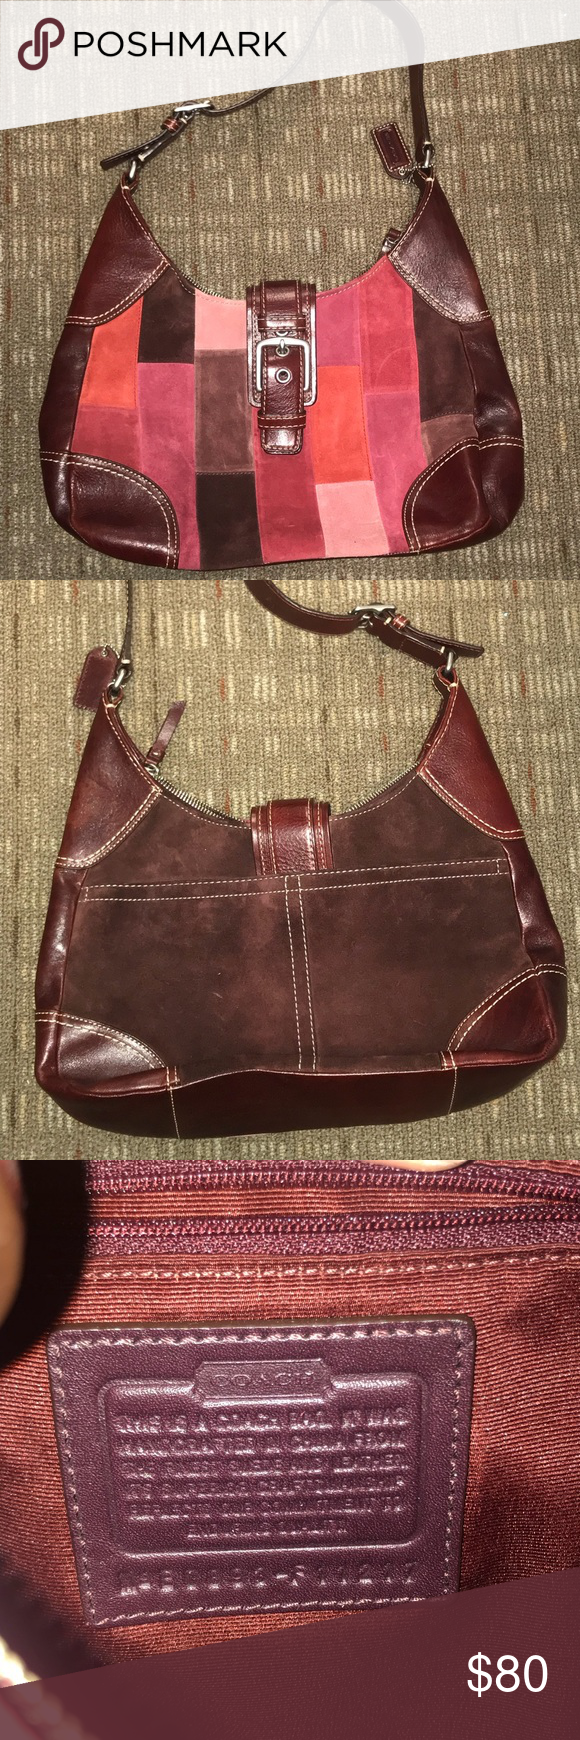 Coach Suede leather bag. Like new. Offers welcome! Suede leather burgundy  patch work bag. No stains. Like new. Coach Bags Hobos 57328c2b81